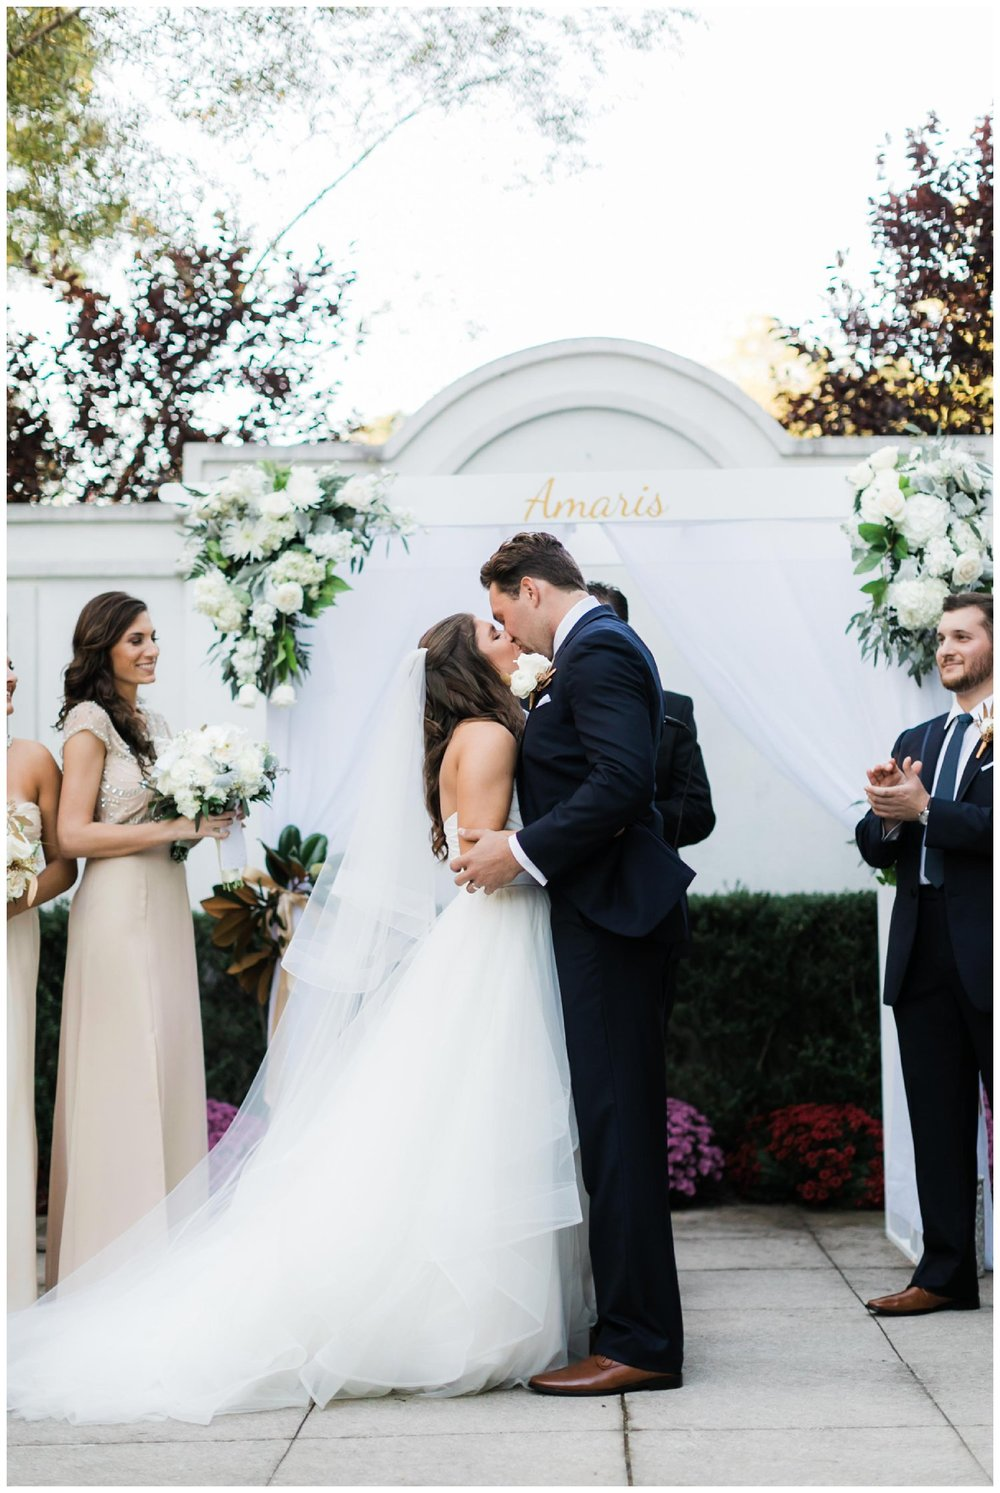 JenandEd_NewJerseyWedding_CarriageHouse_Galloway_NJ__SouthJersey_Wedding_Photographer_MagdalenaStudios_0239.jpg